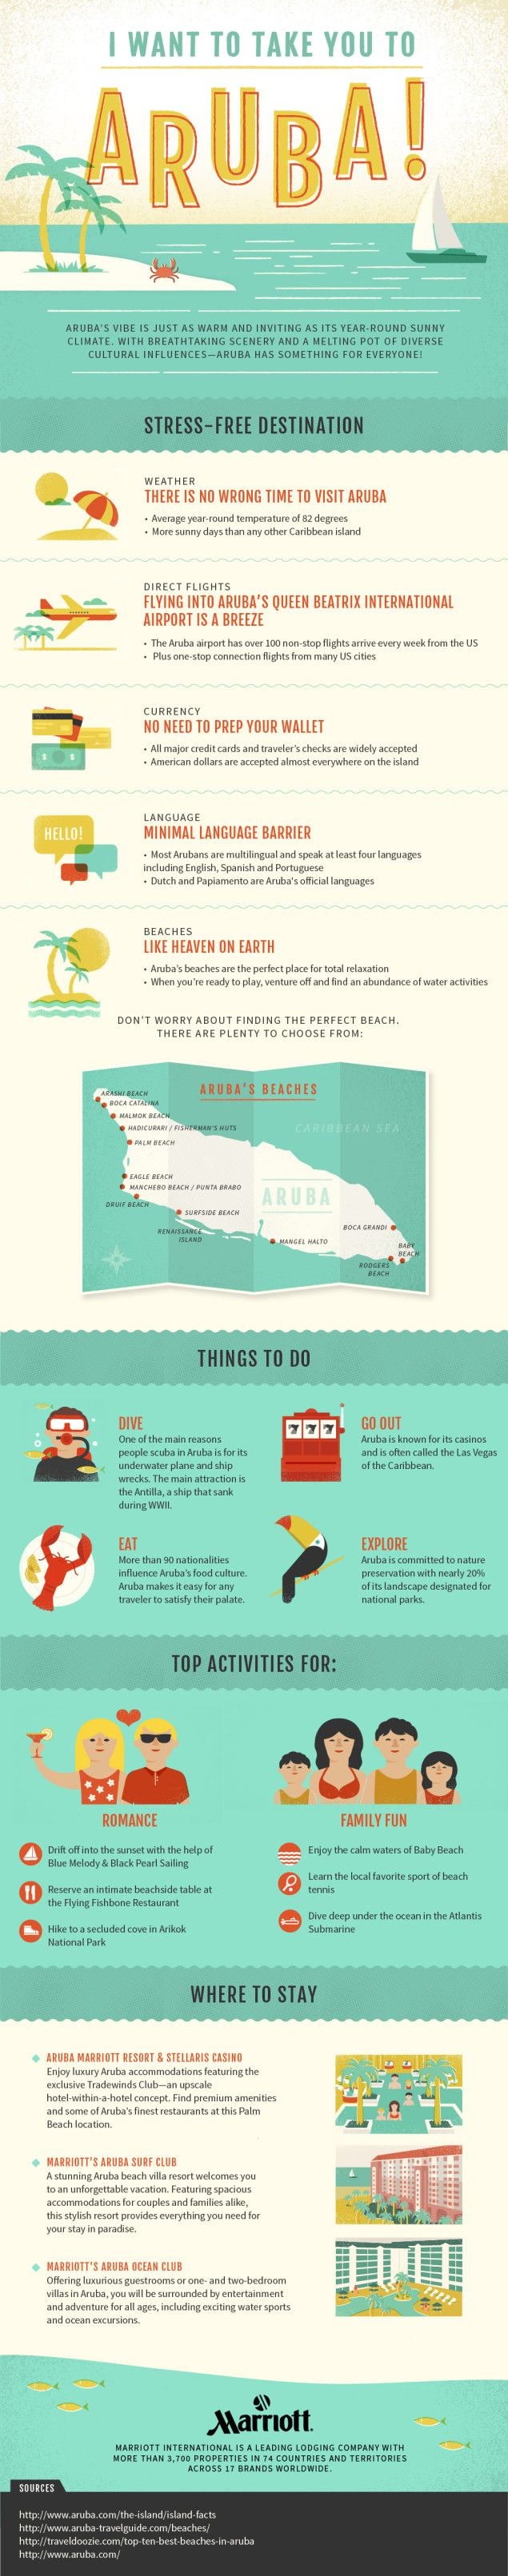 Aruba Travel Tips Infographic